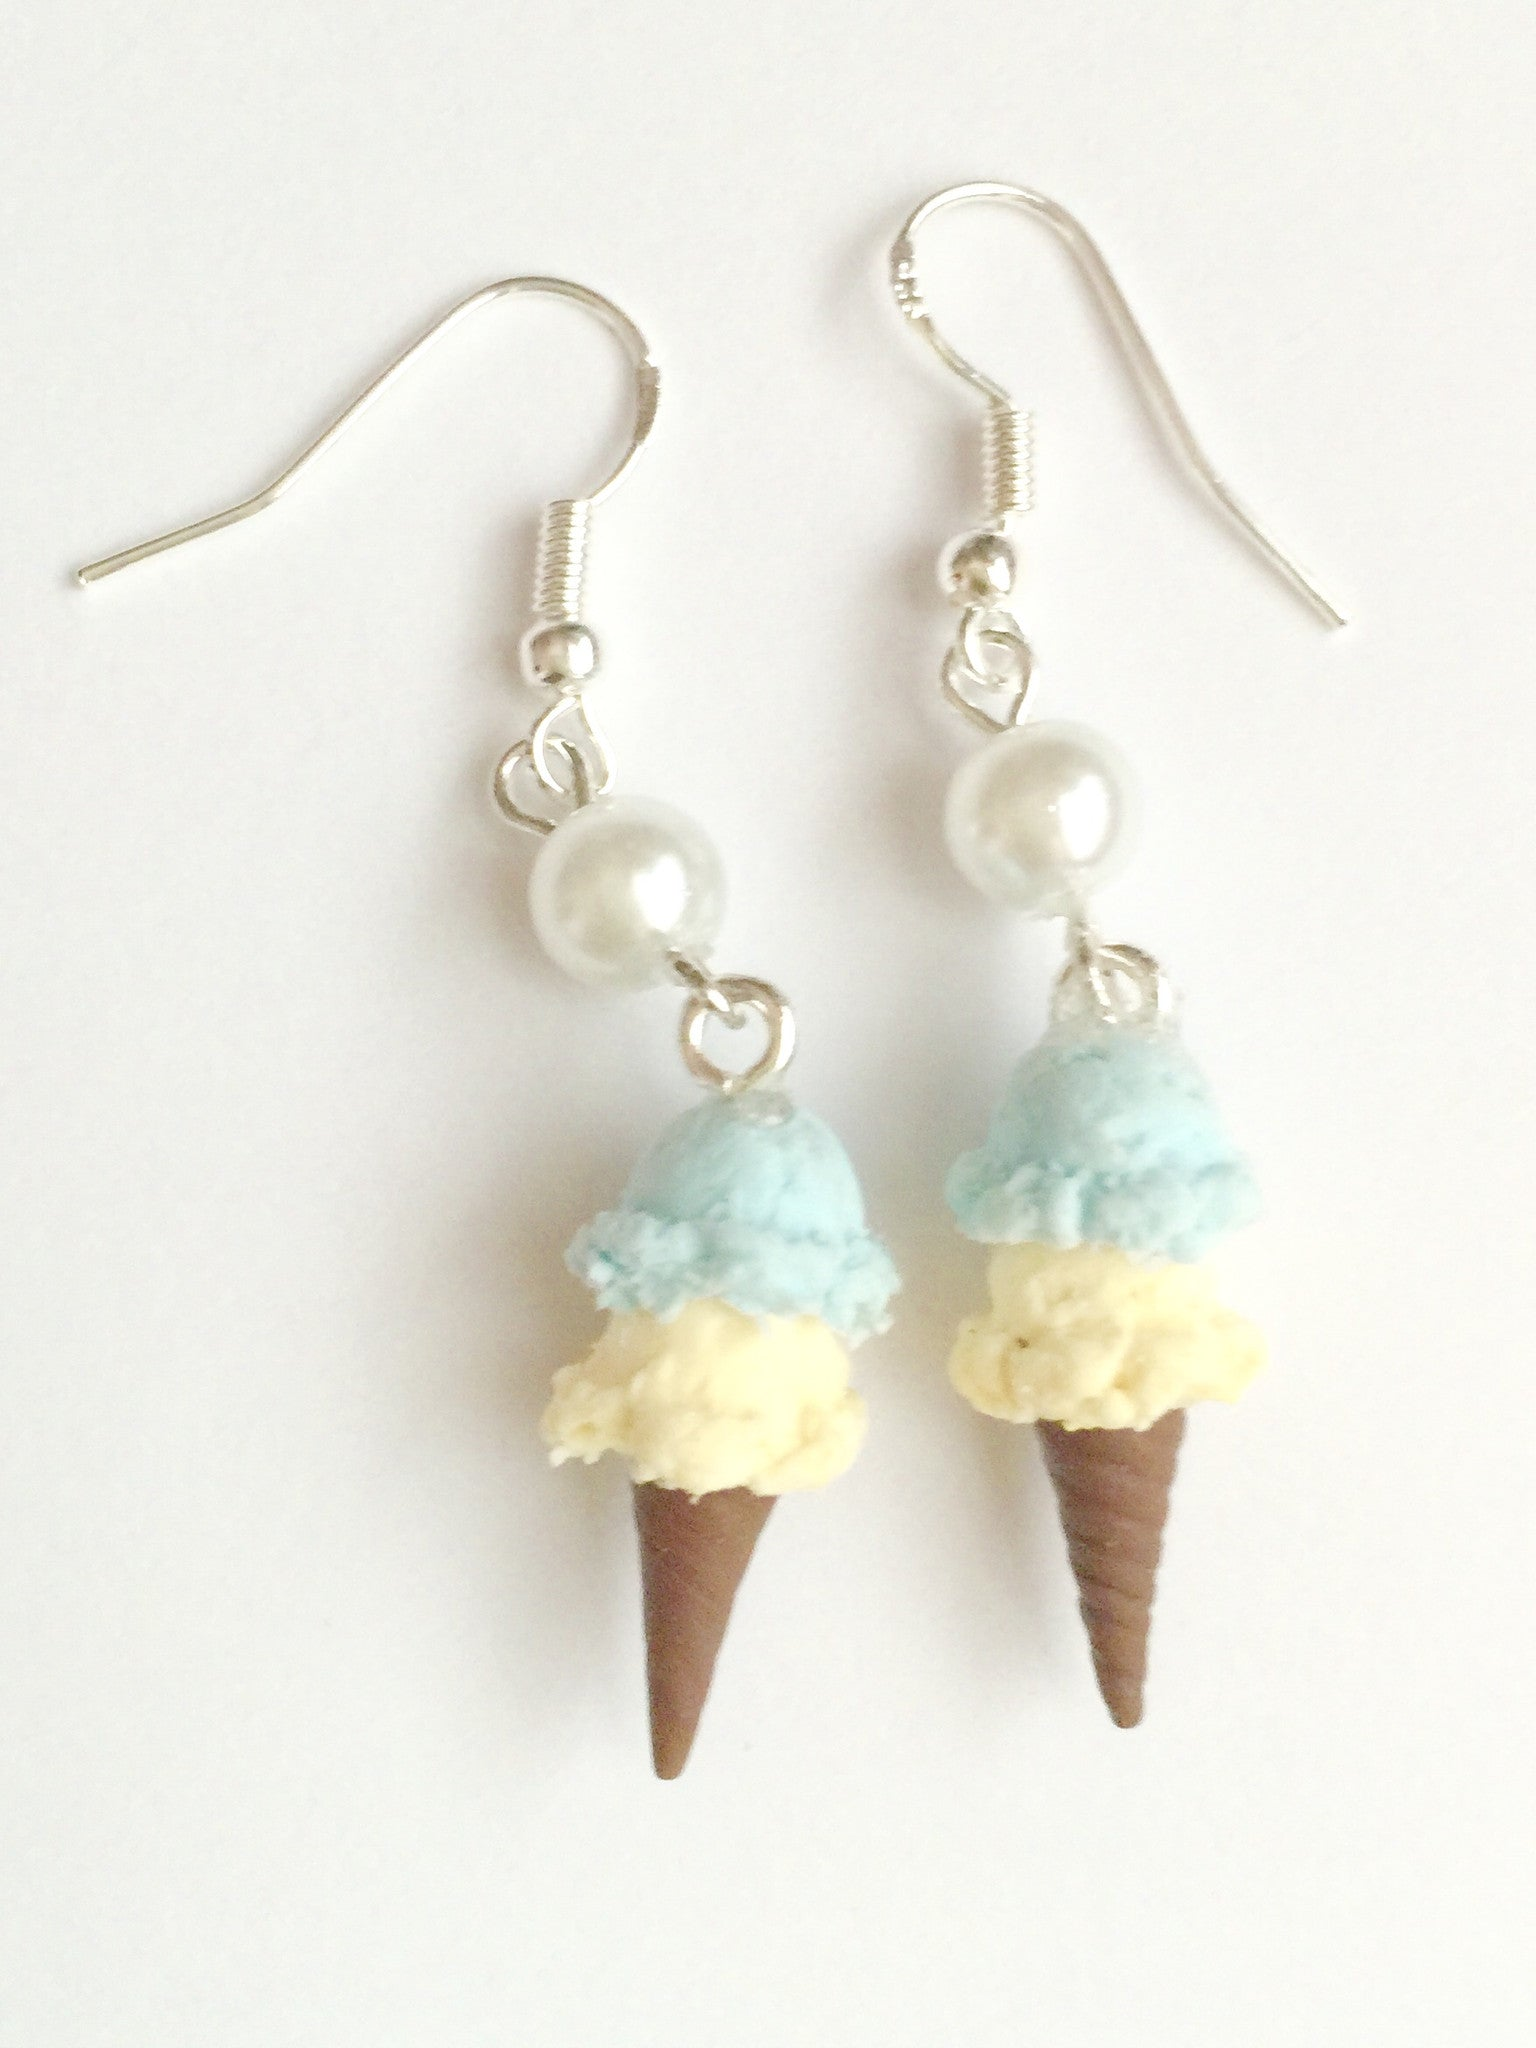 Ice Cream Cone Earrings - Jillicious charms and accessories